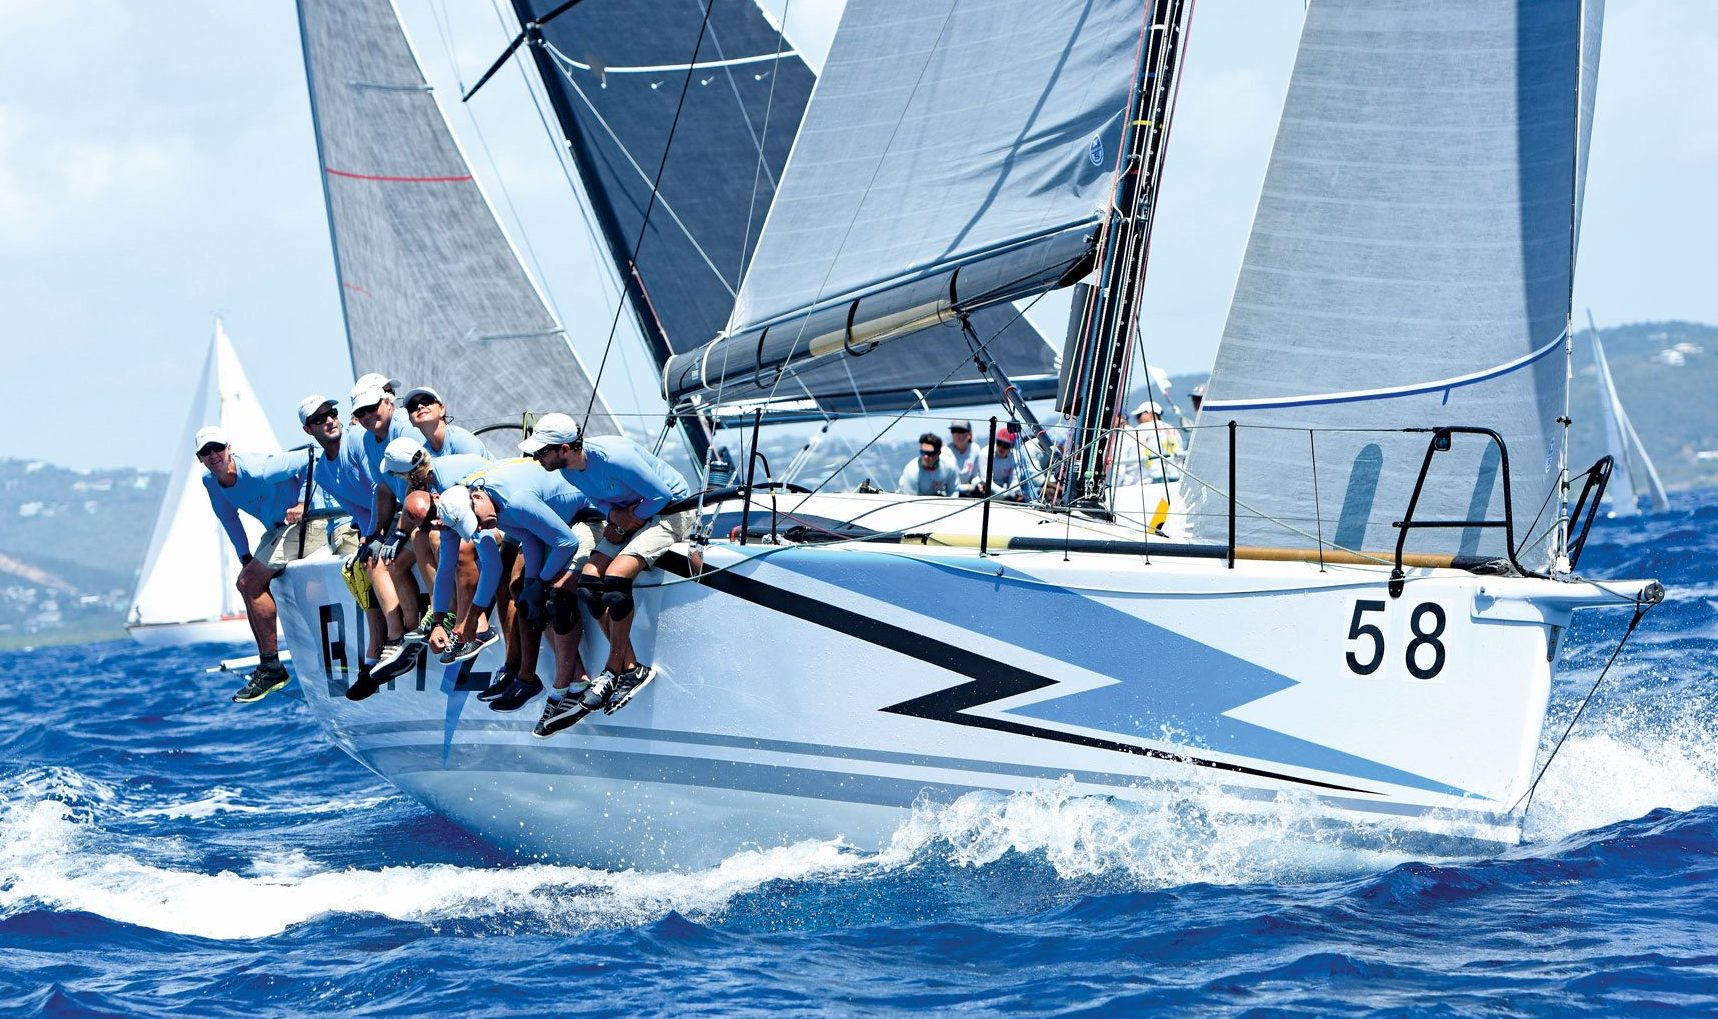 With her distinctive paint job, Blitz stormed through the season winning four regattas in a row. Photo: Dean Barnes